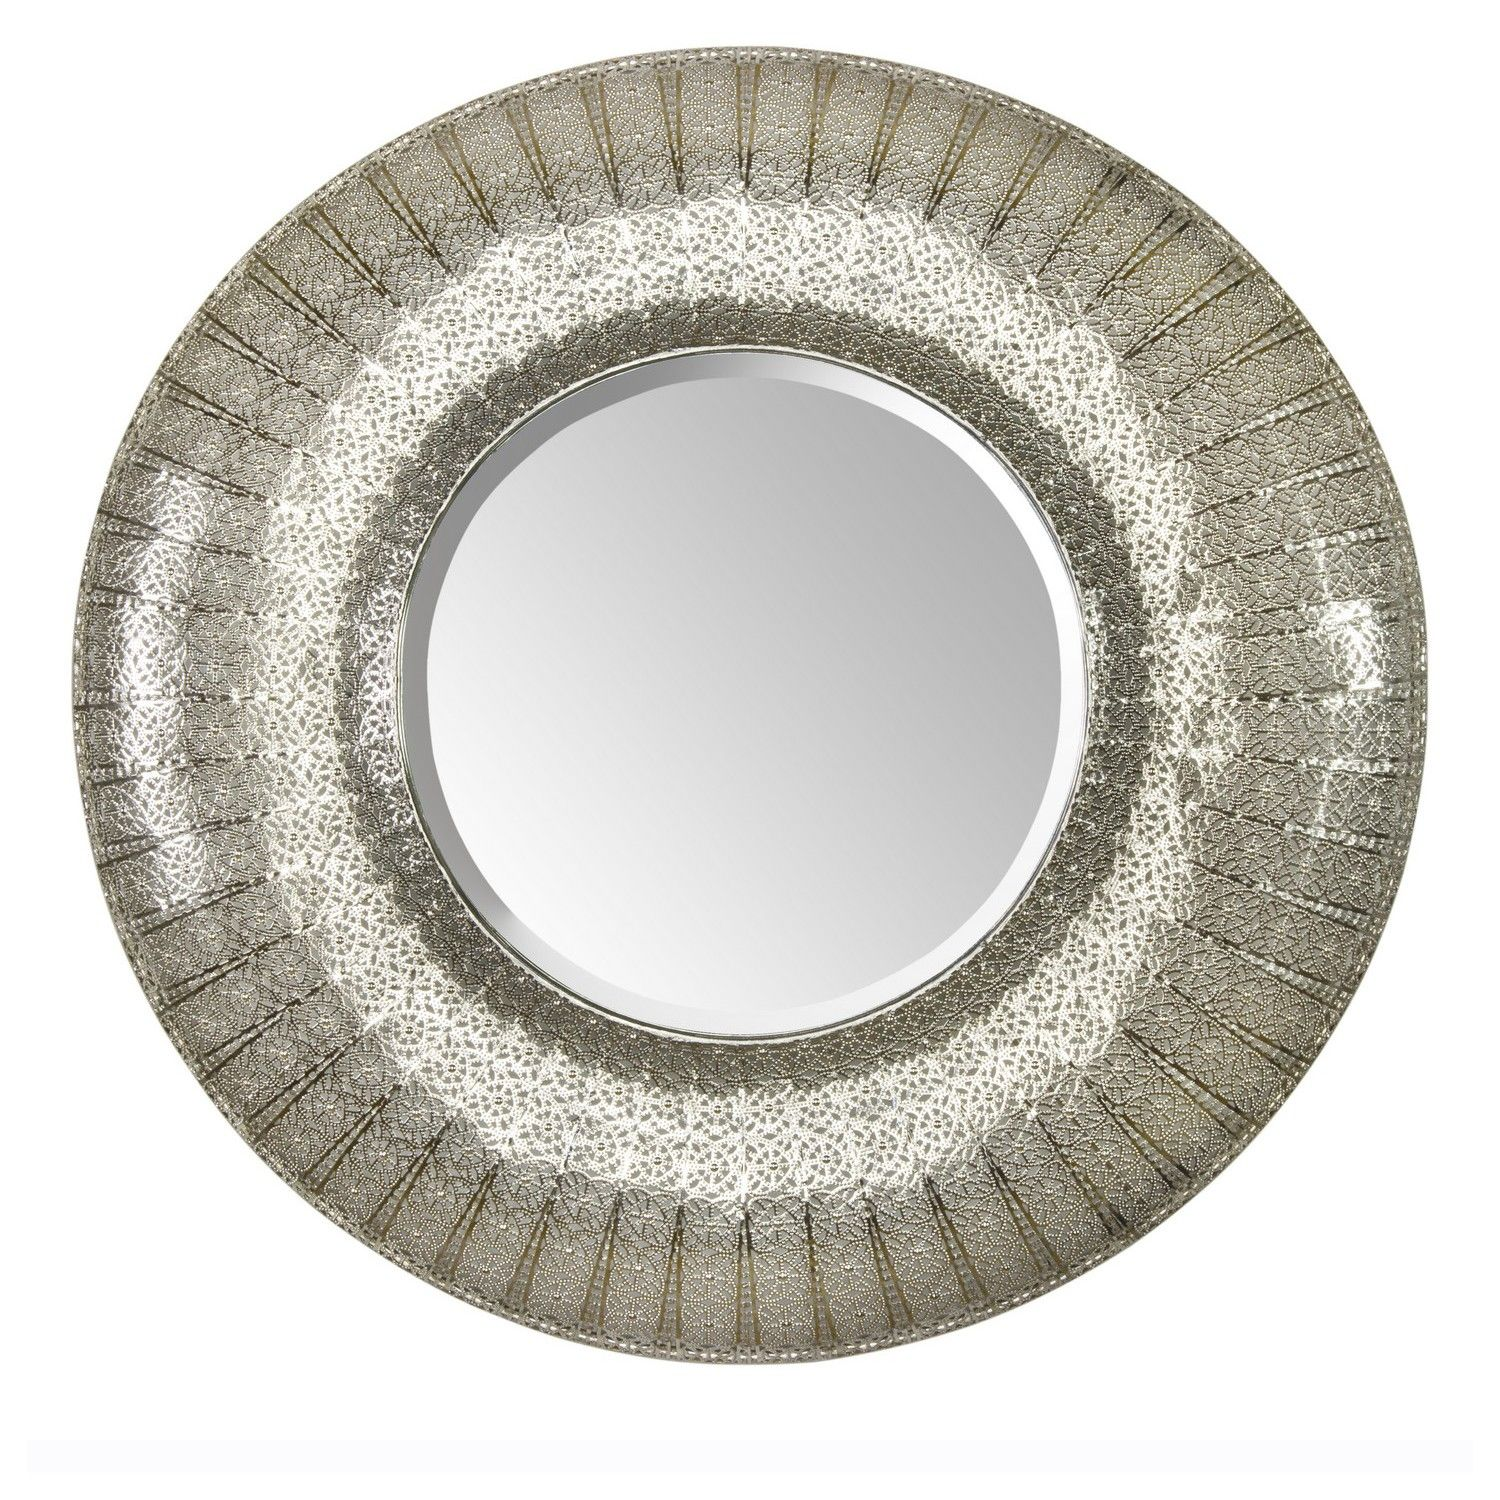 Round Moroccan Mirror. The round one in silver! £54.99